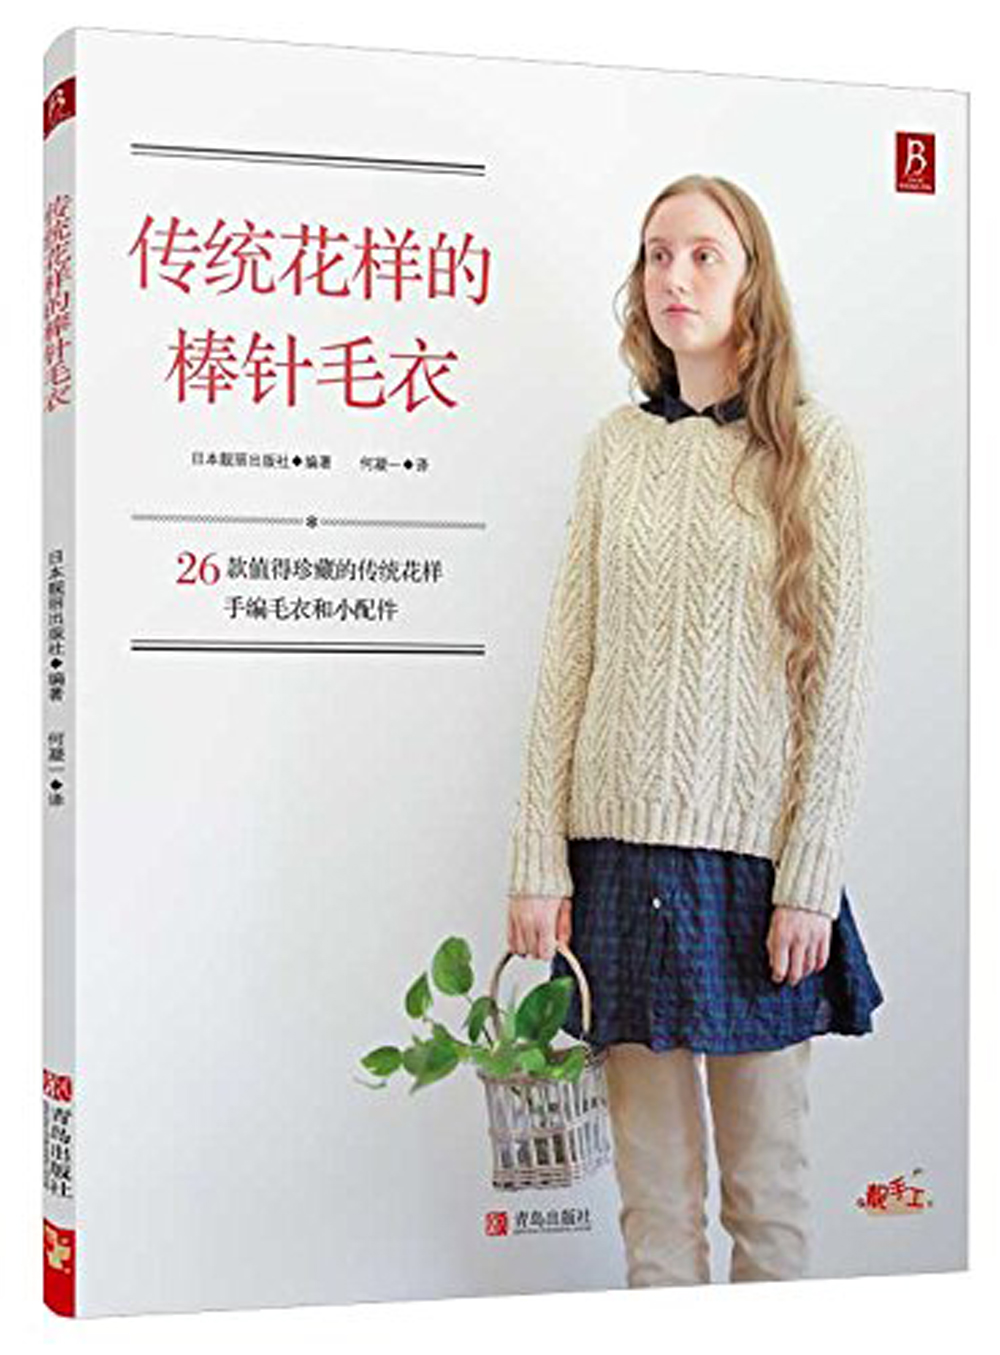 Chinese Knitting Pattern Book with Traditional patternChinese Knitting Pattern Book with Traditional pattern